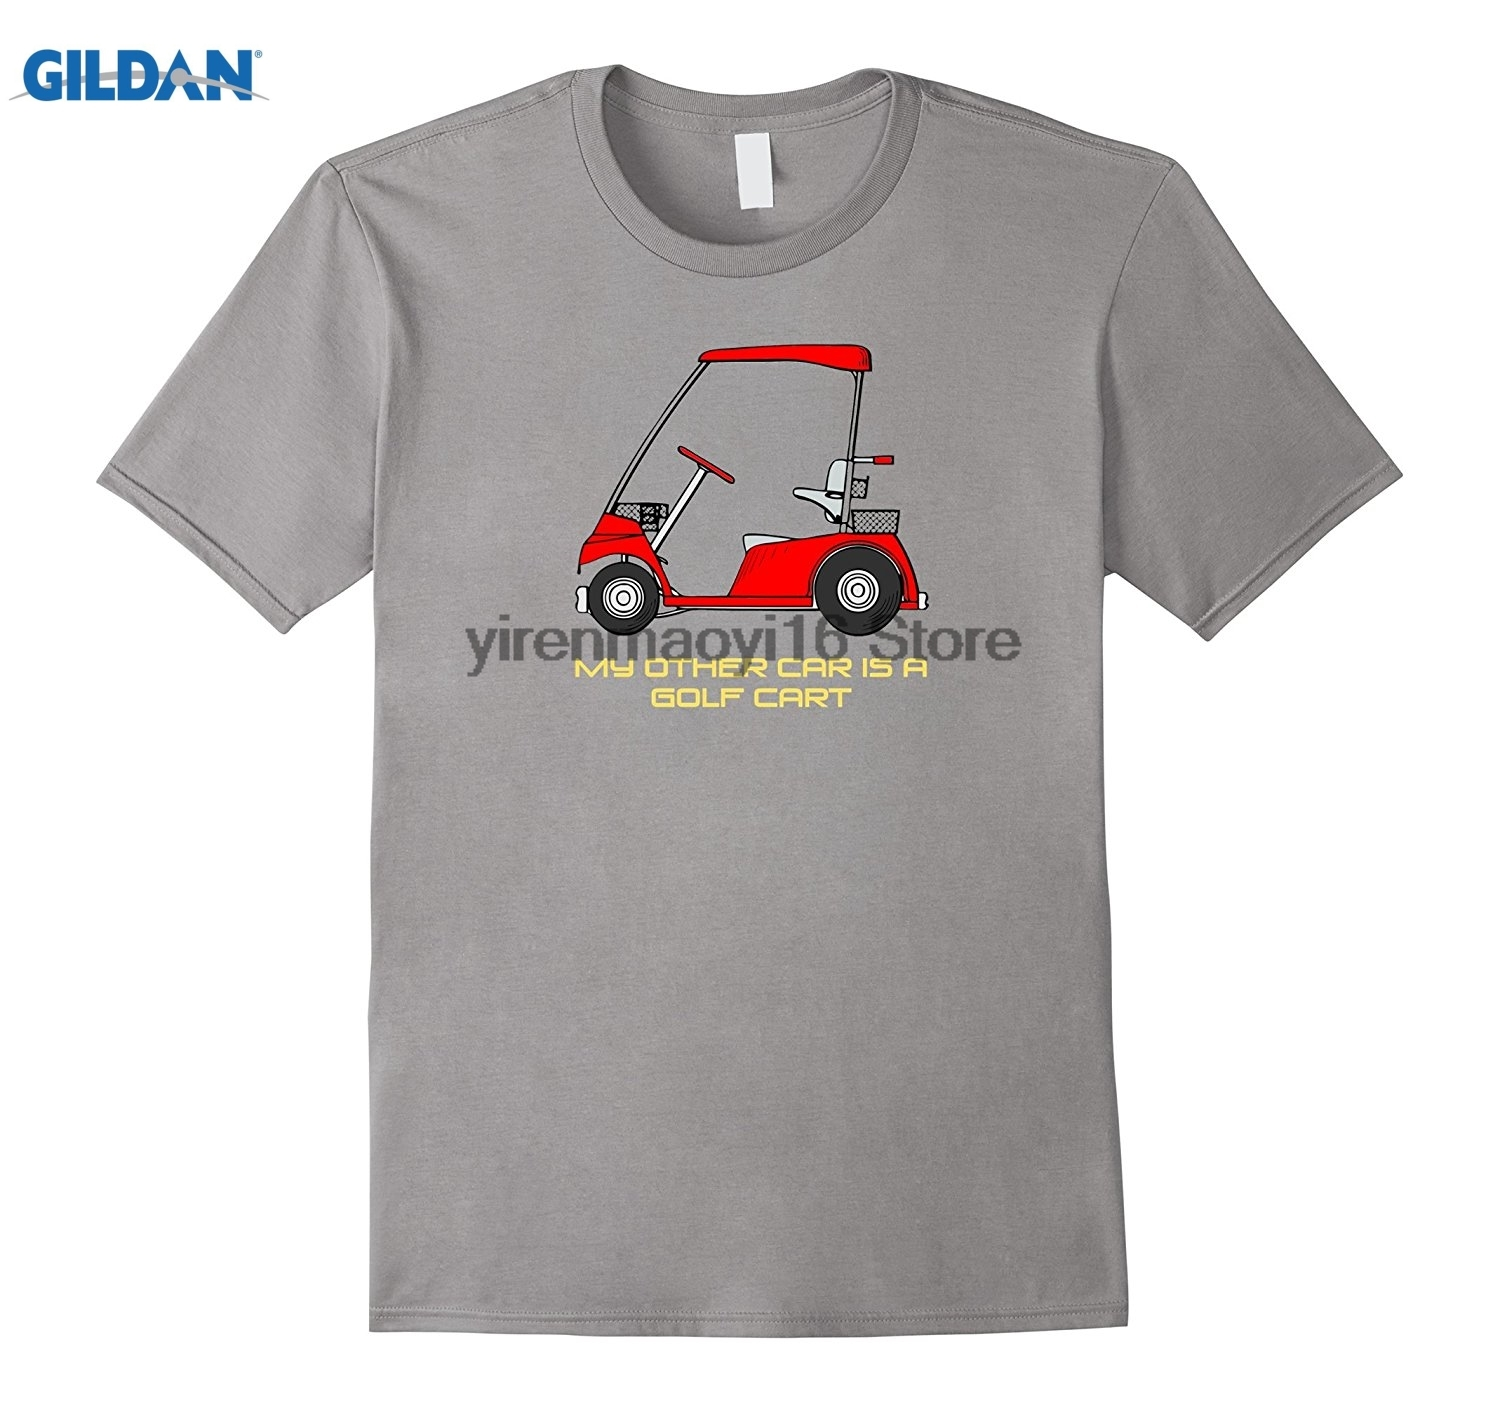 GILDAN 2018 My Other Car Is A Cart T-Shirt Golfer Tee Shirt